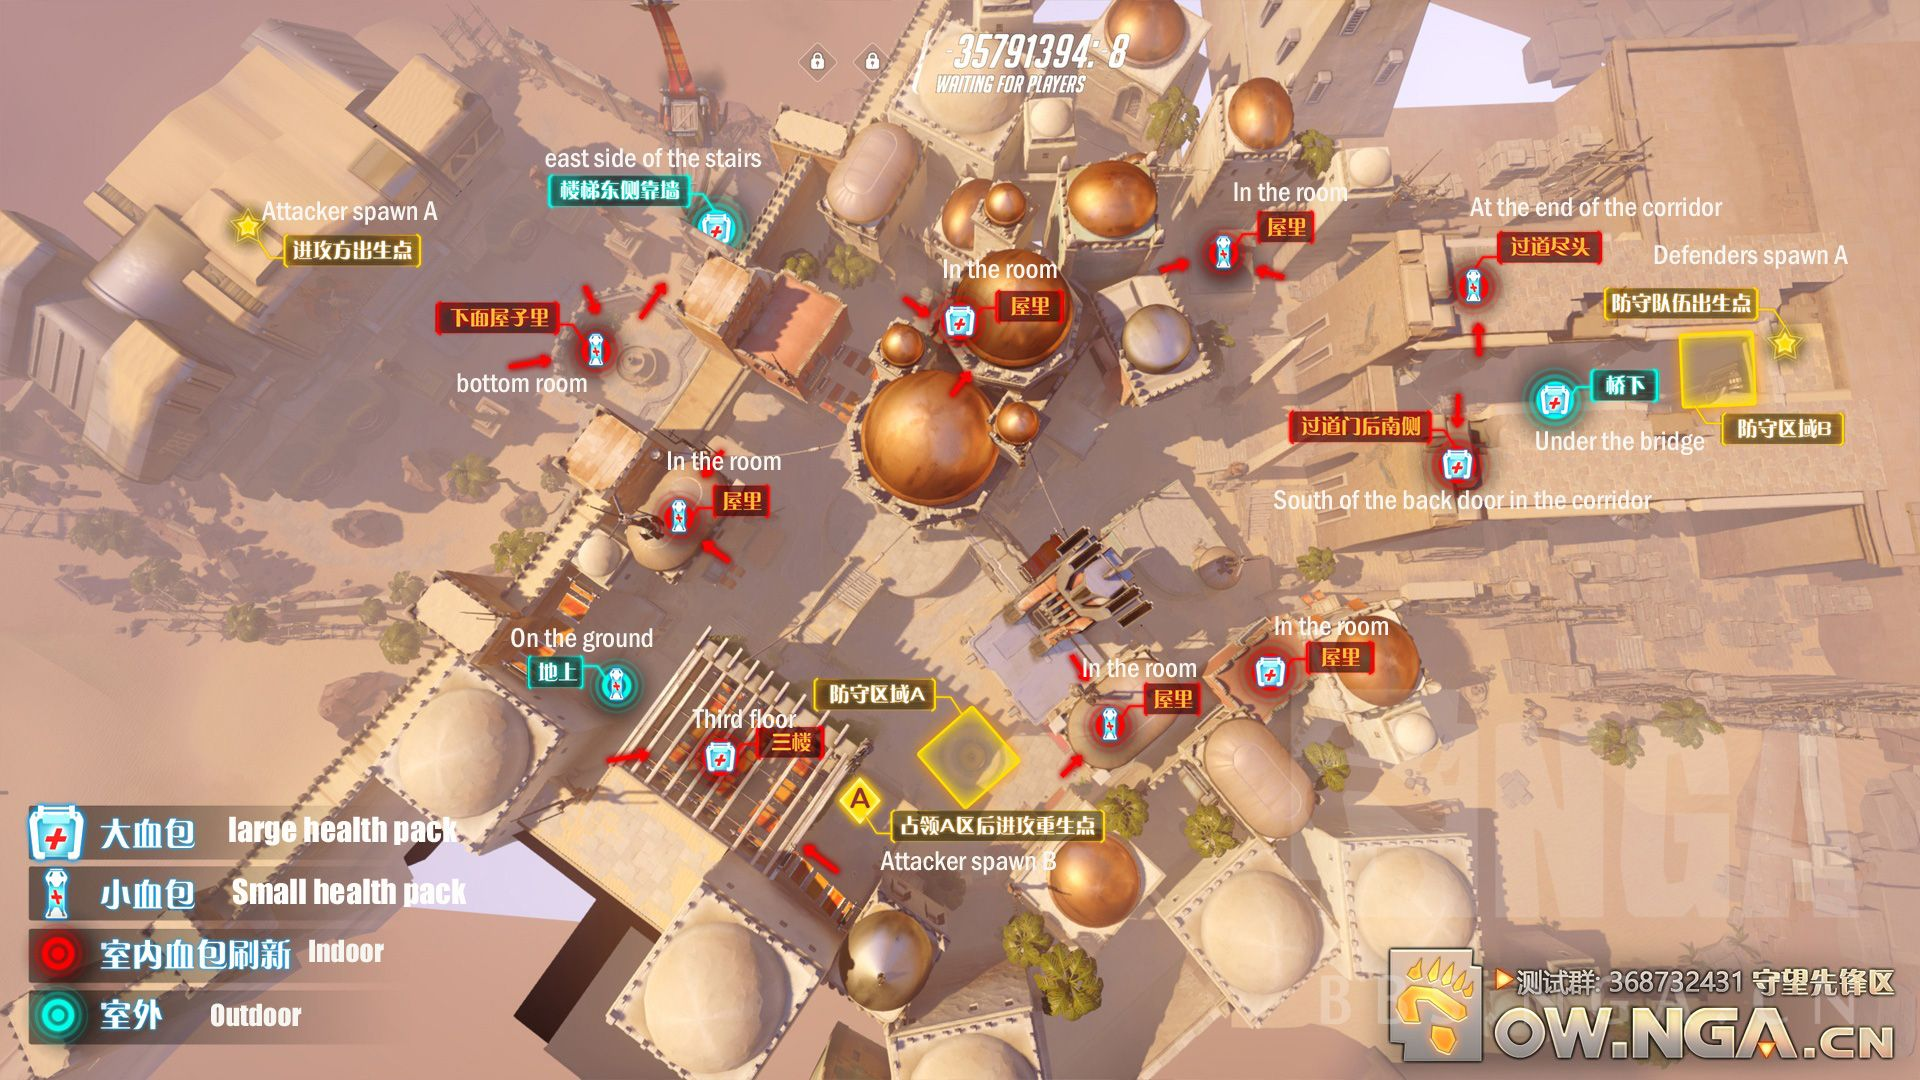 Pin by Nicolas Palmer on Level Design | Overwatch, Temple of